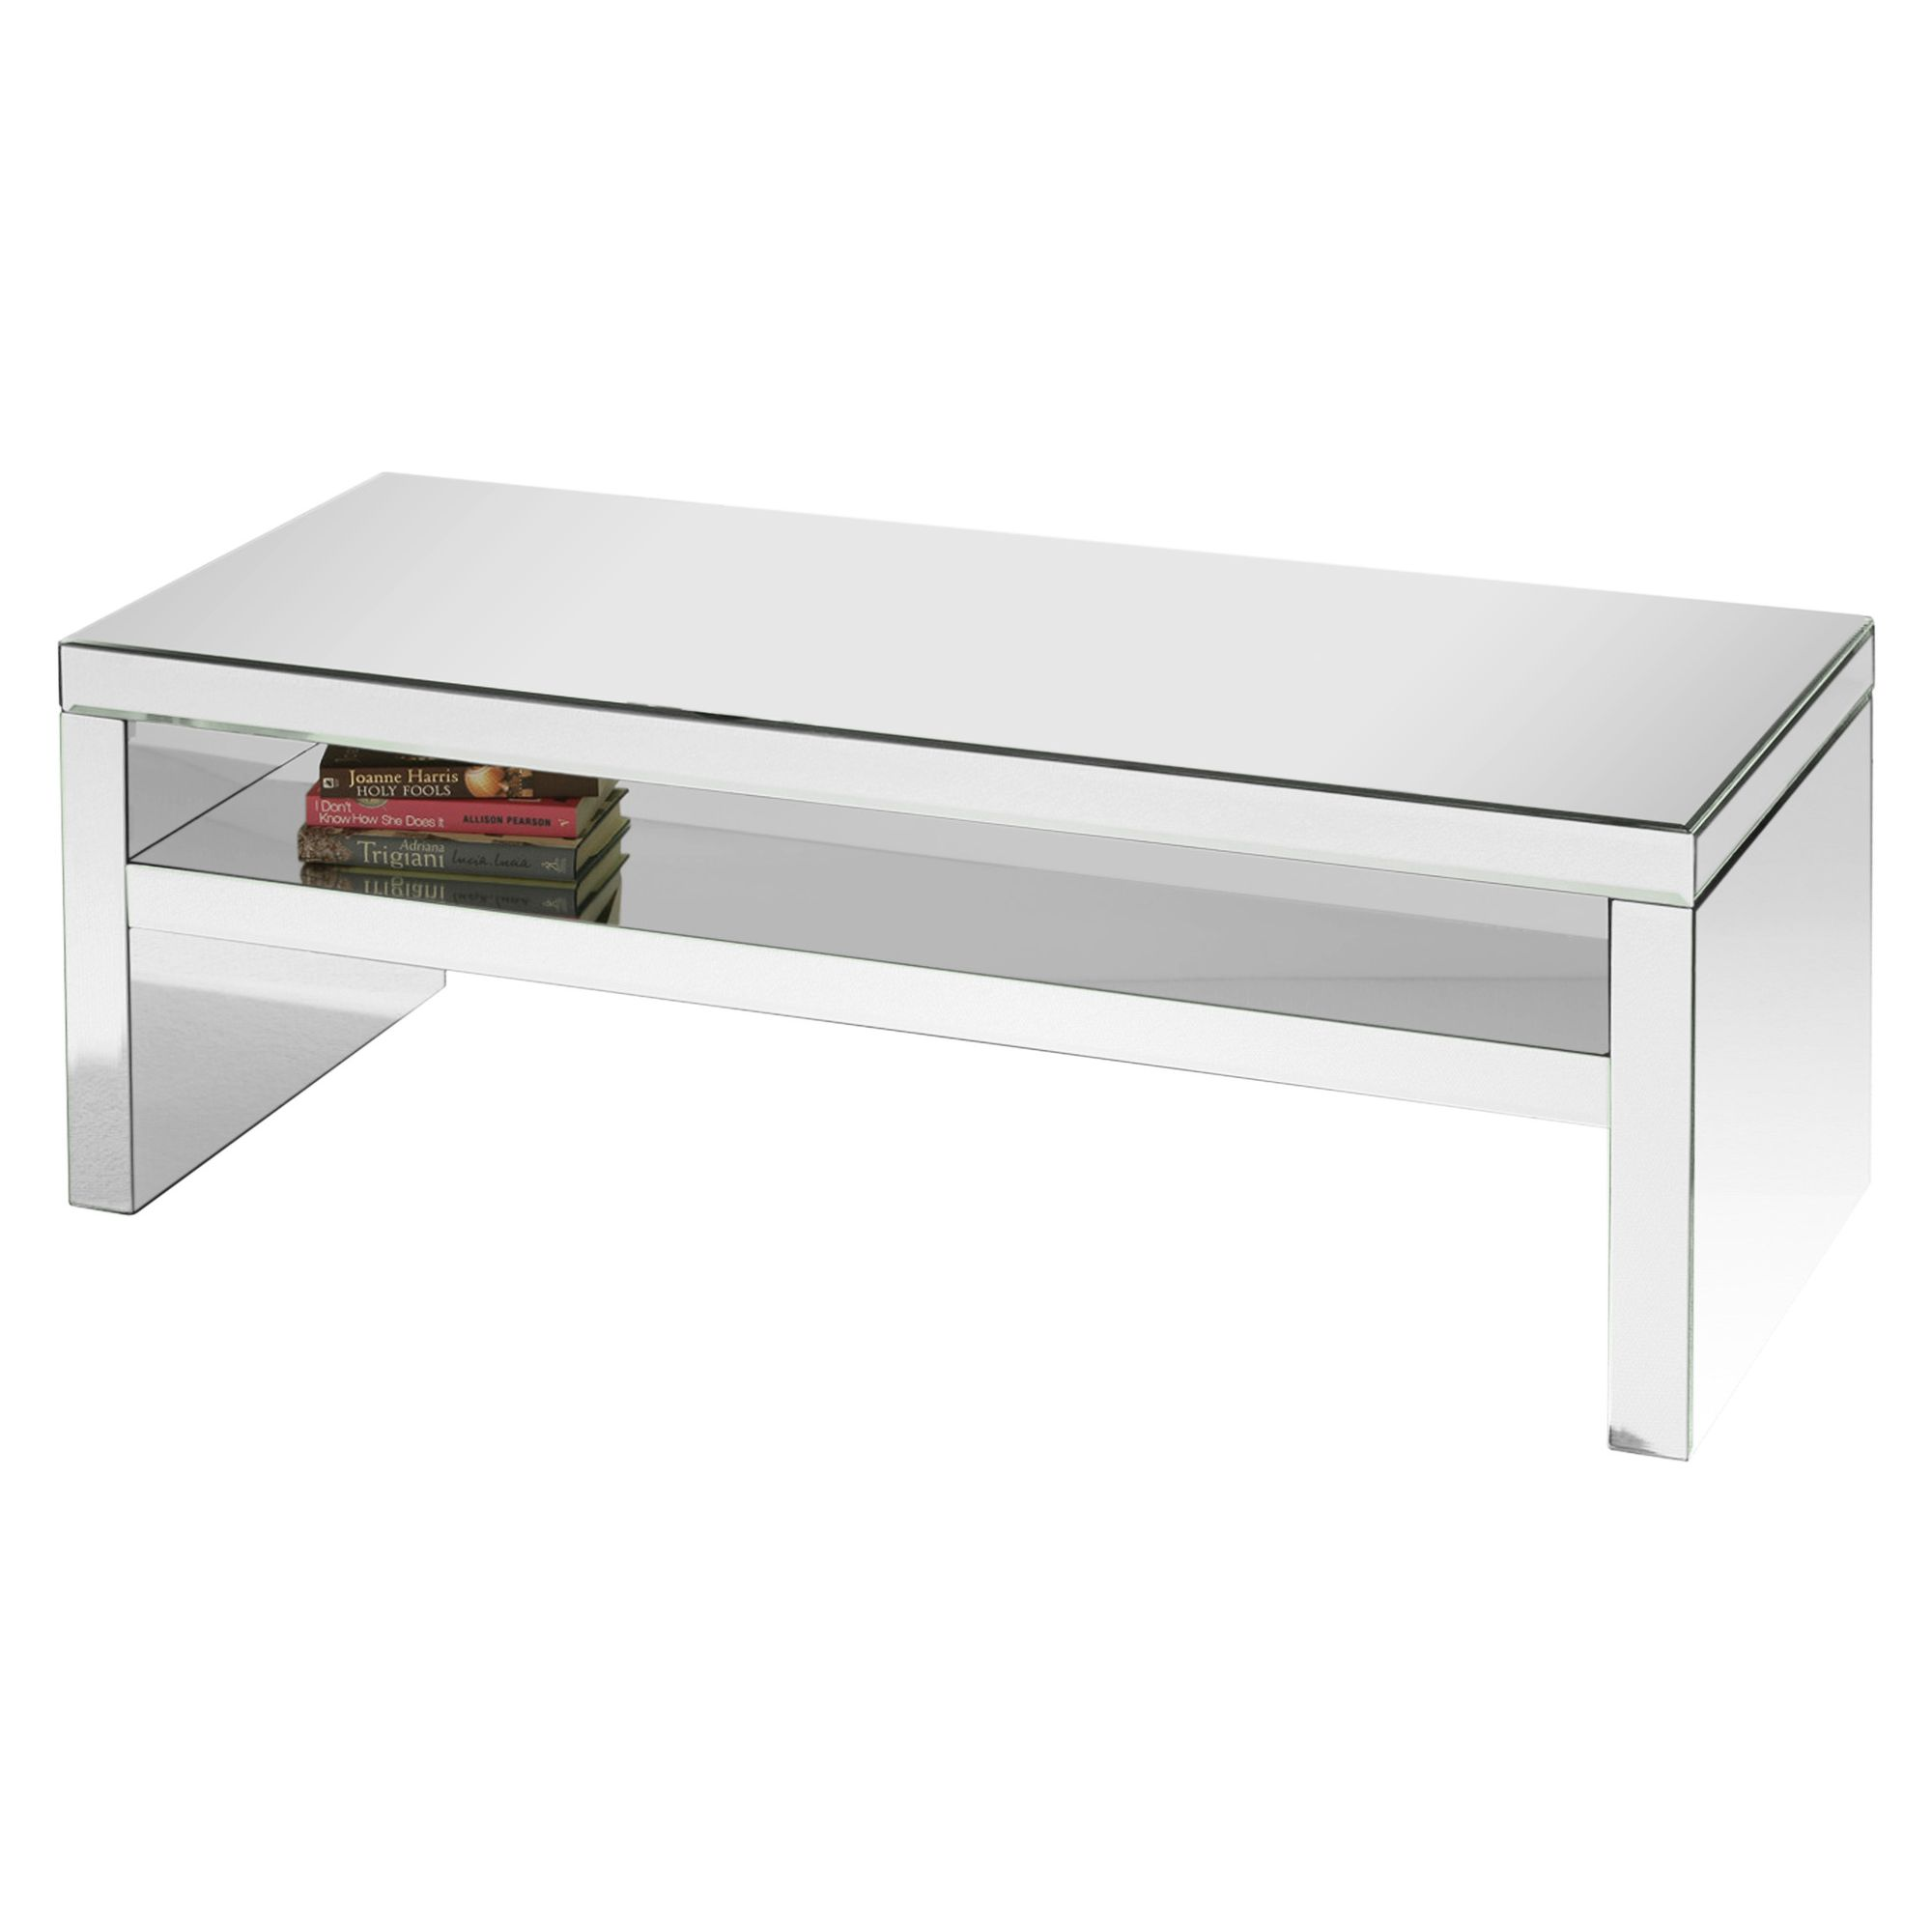 Premier Housewares Vincenzo Coffee Table at Tesco Direct